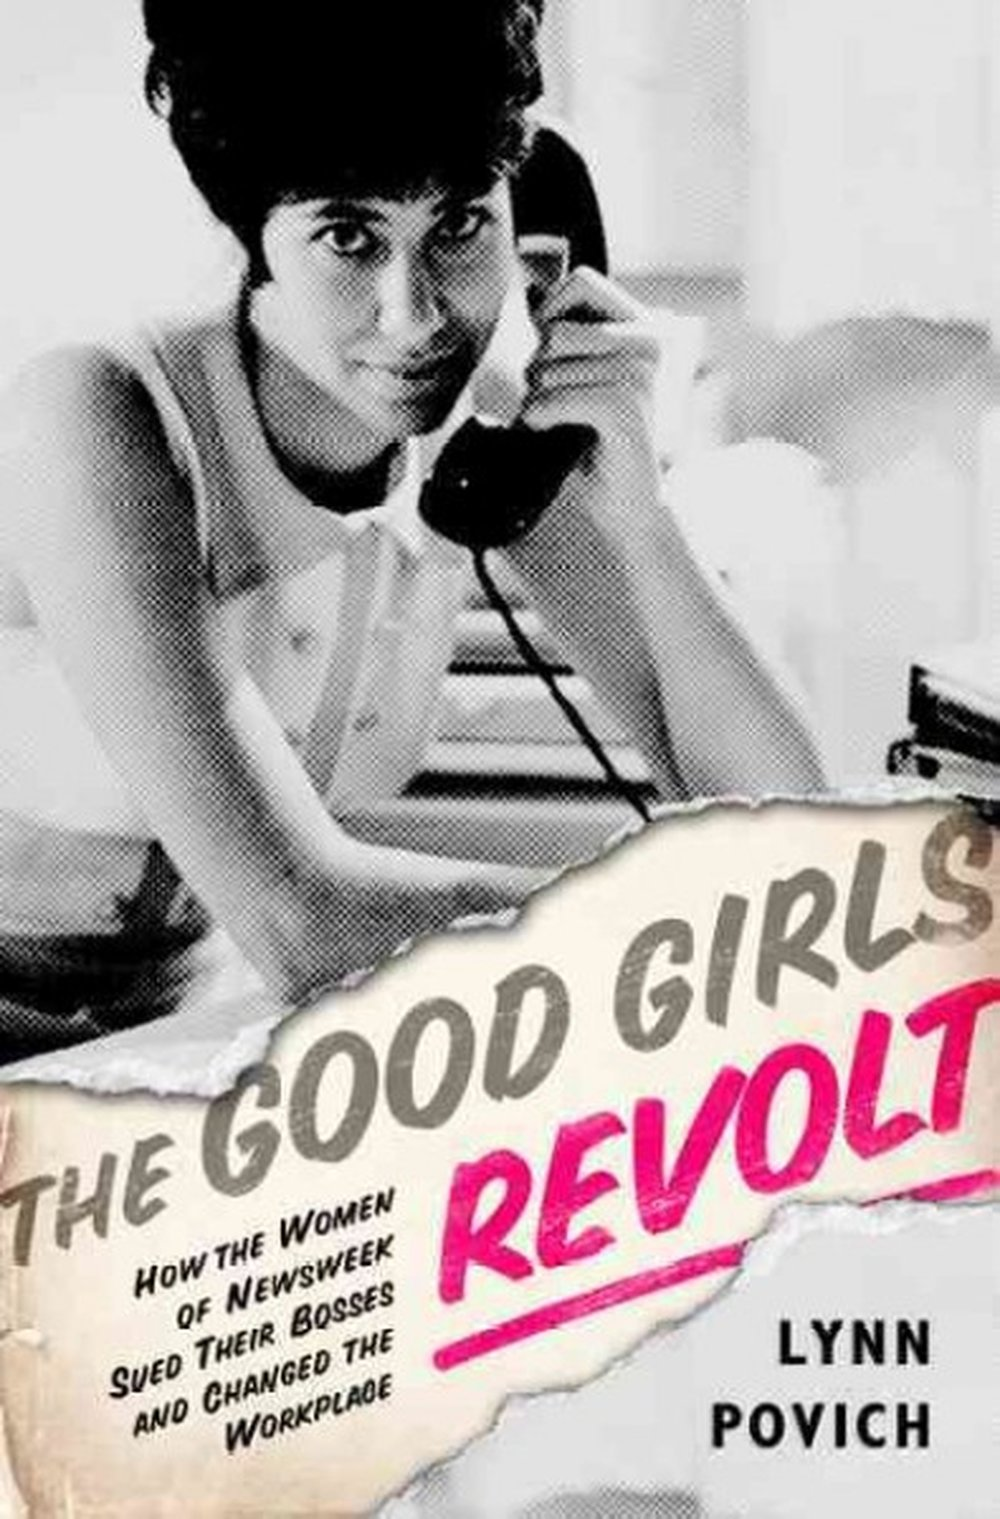 5 Books to Read that Inspired Great Television Series | 1) The Good Girls Revolt (the book)